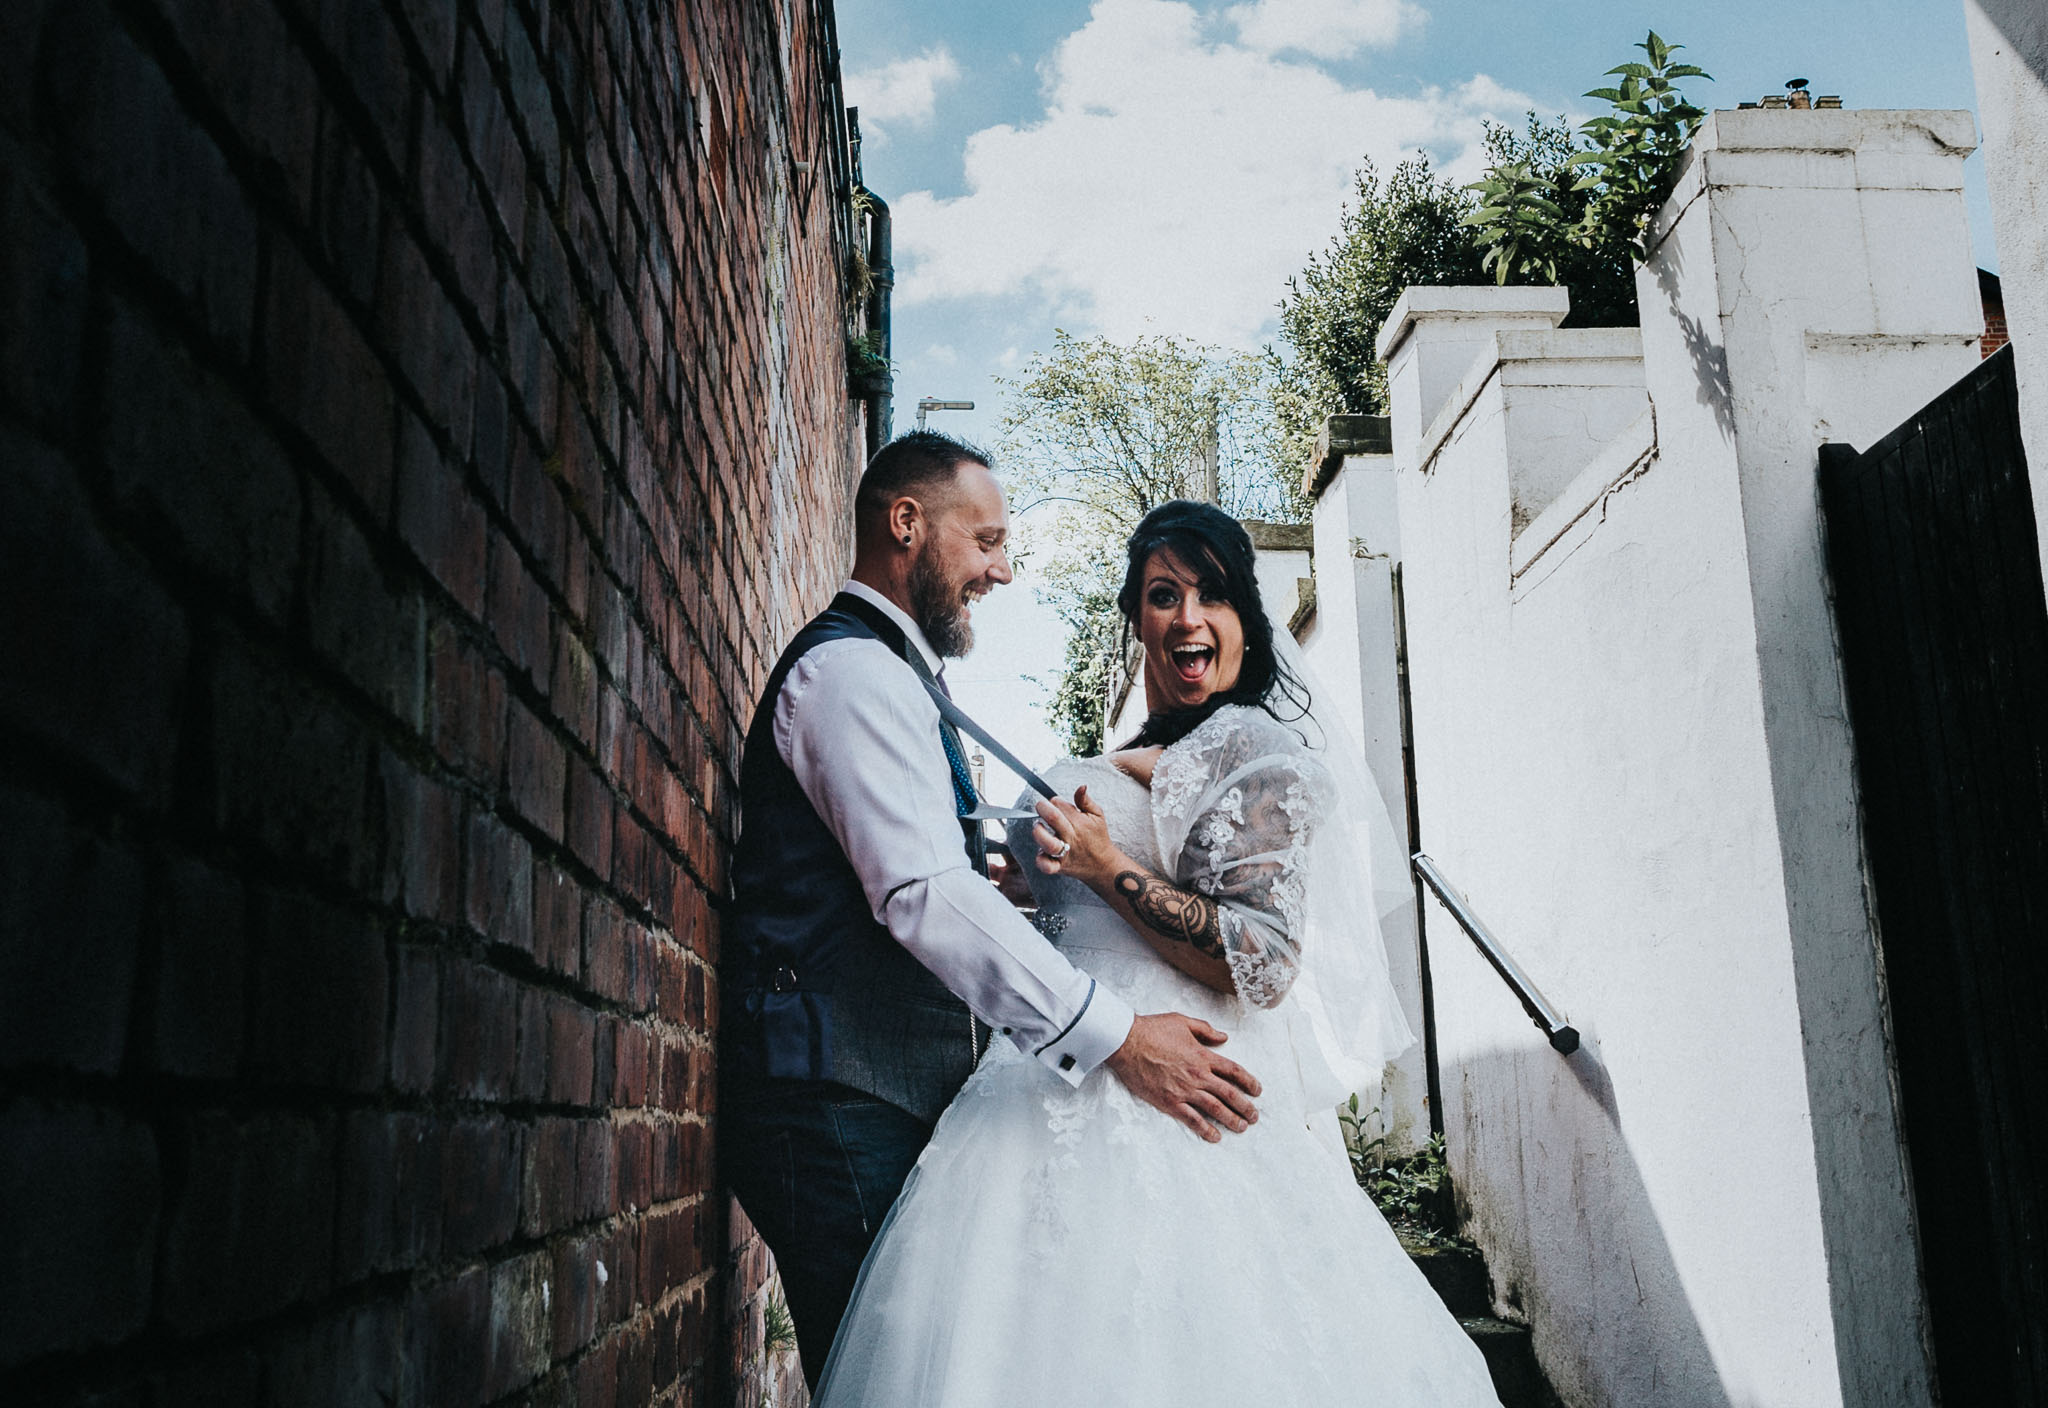 WEDDING: A Belle Epoque Eclectic wonder.... Real bloody fun wedding photography